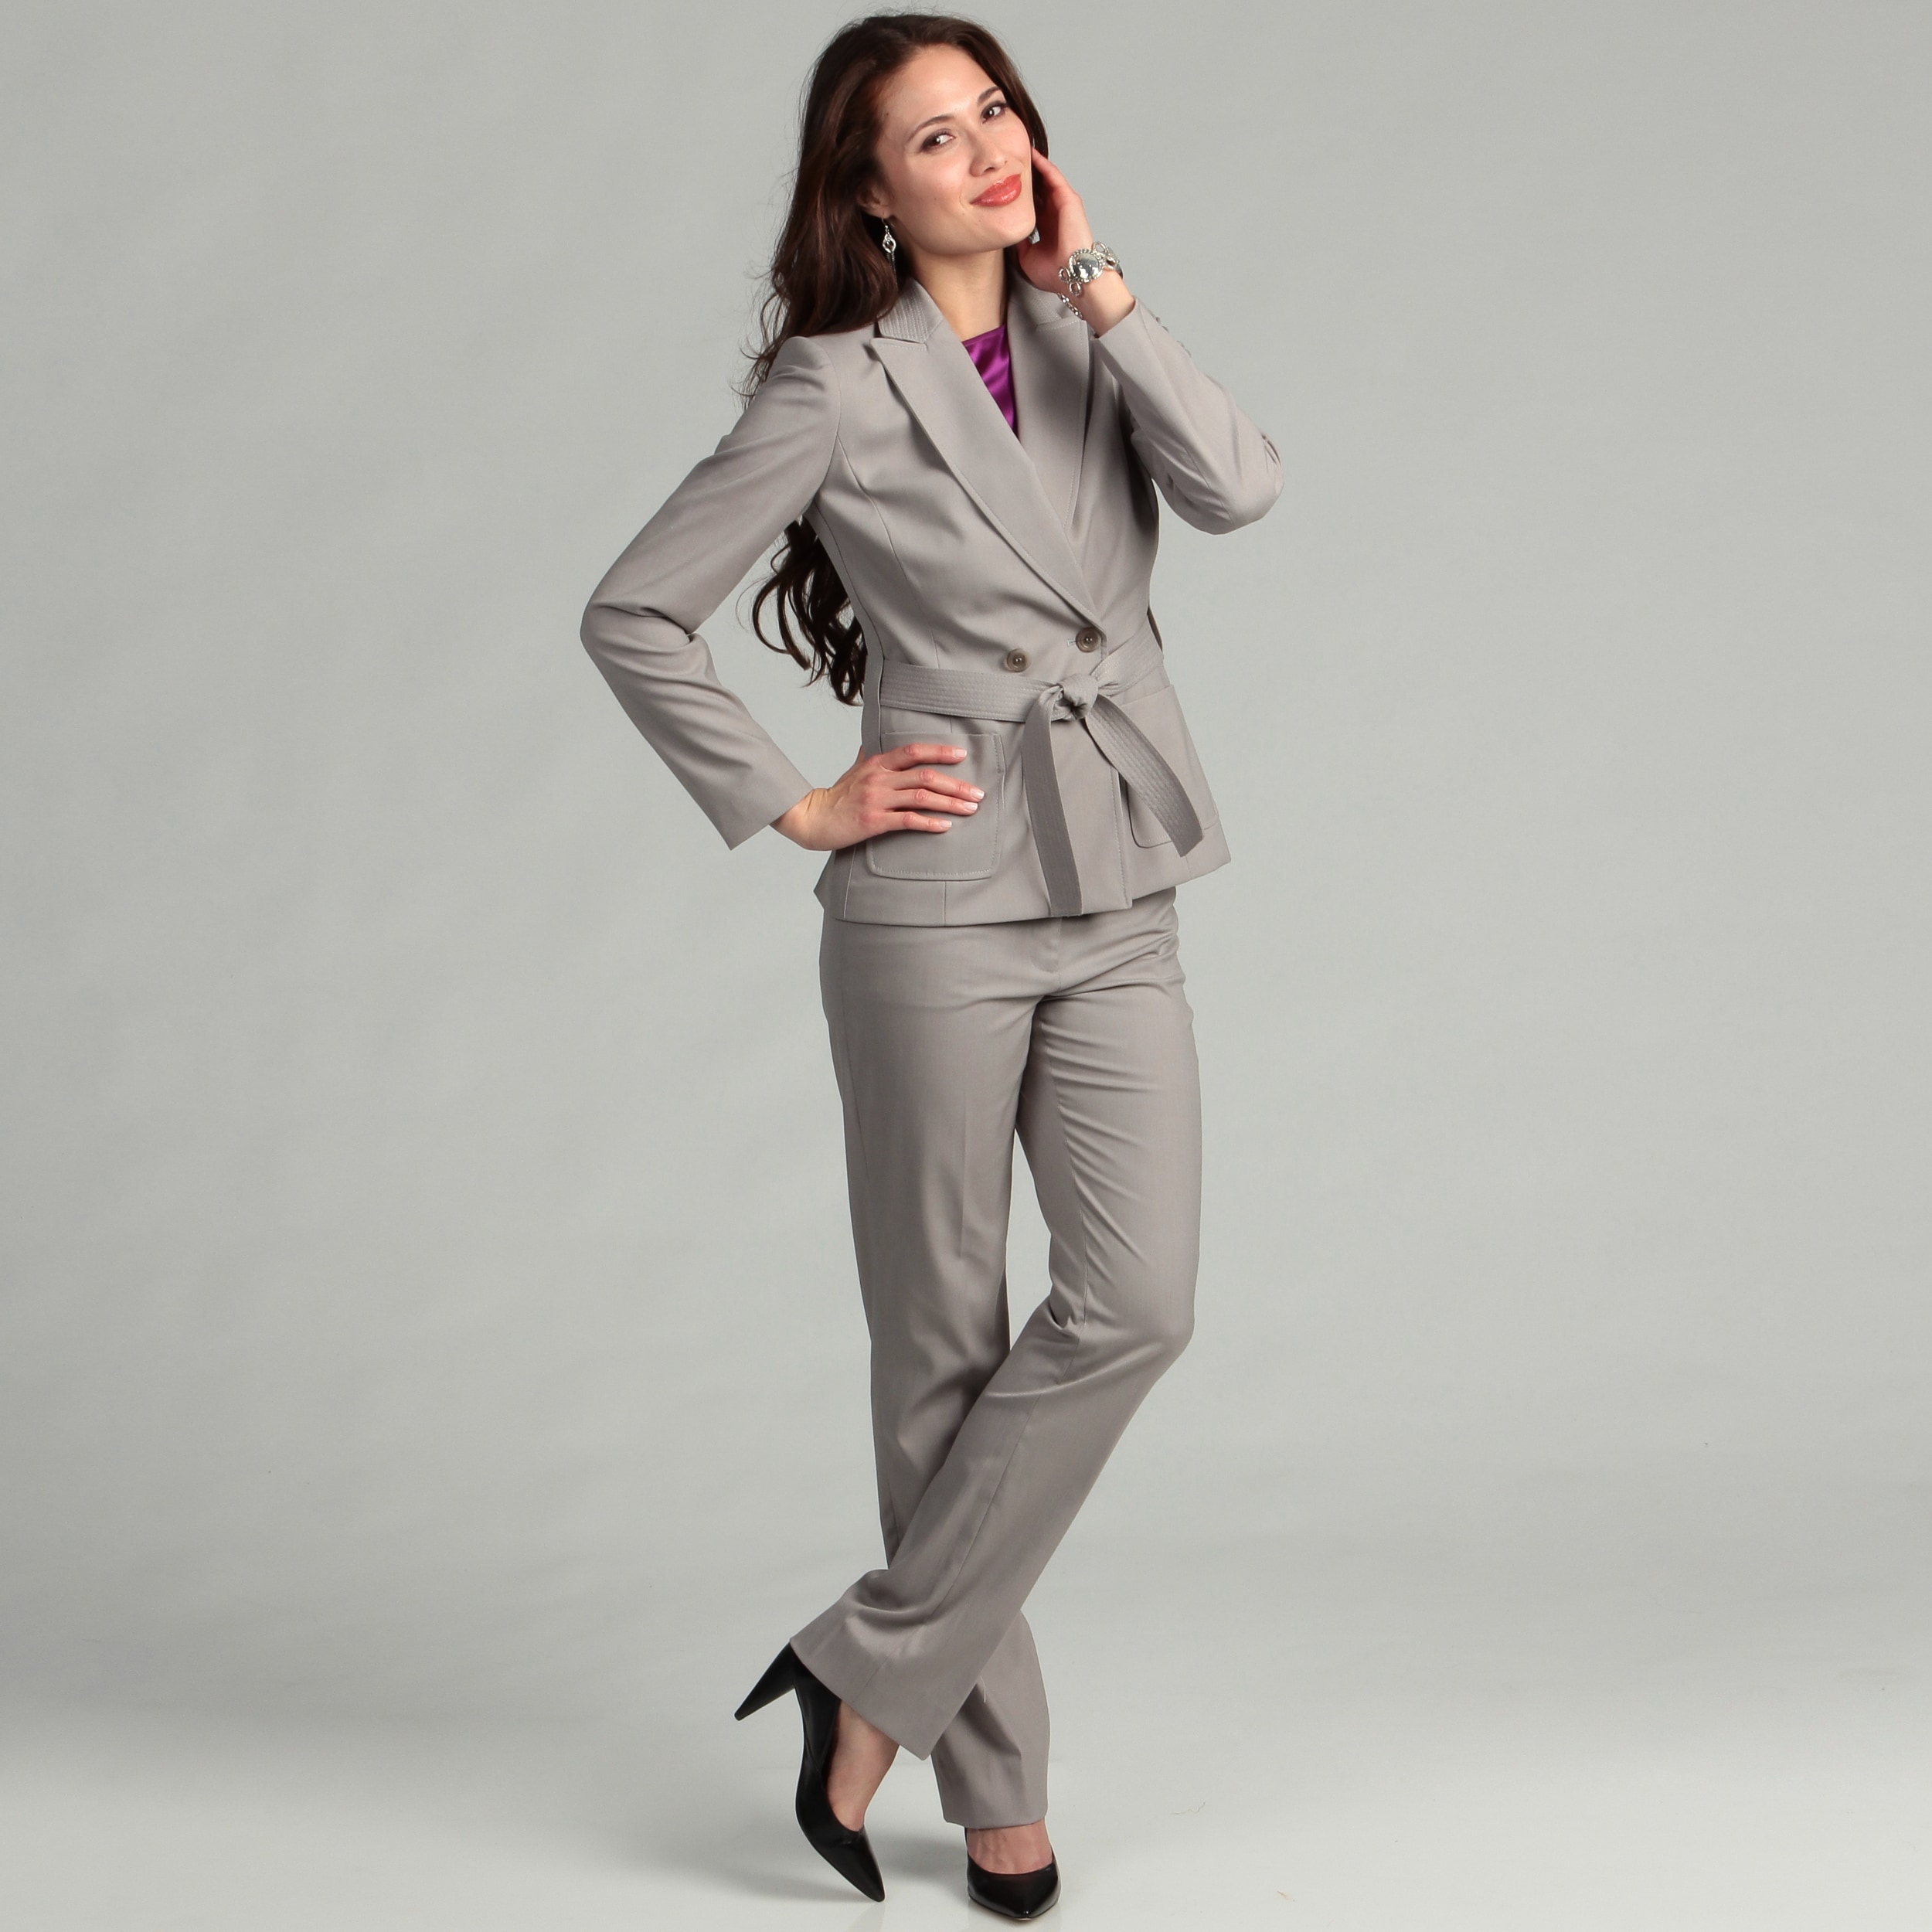 Lastest A St John Sport By Marie Gray Womens Jacket And Pant Suit The Long Sleeve Jacket Features A Logo And Checkerboard Pattern Tonal Jacquard With Faux Leather Trim Around The Collar And At The Cuffs Silver Tone Hardware Decorate The Jacket